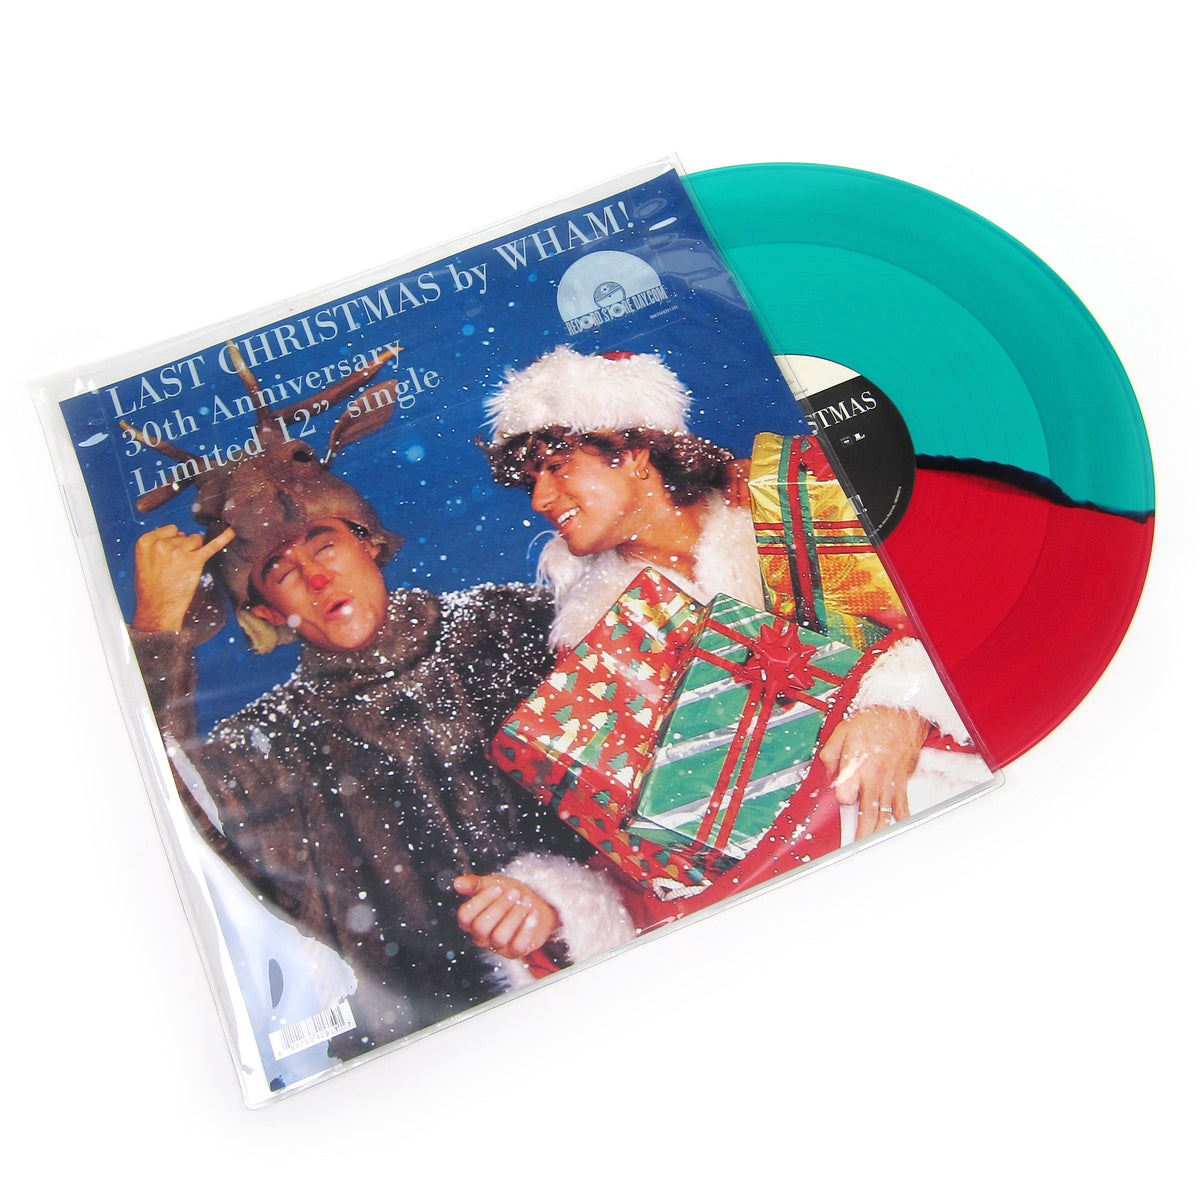 "Wham: Last Christmas (Split Colored Vinyl) Vinyl 12"" (Record Store Day)"